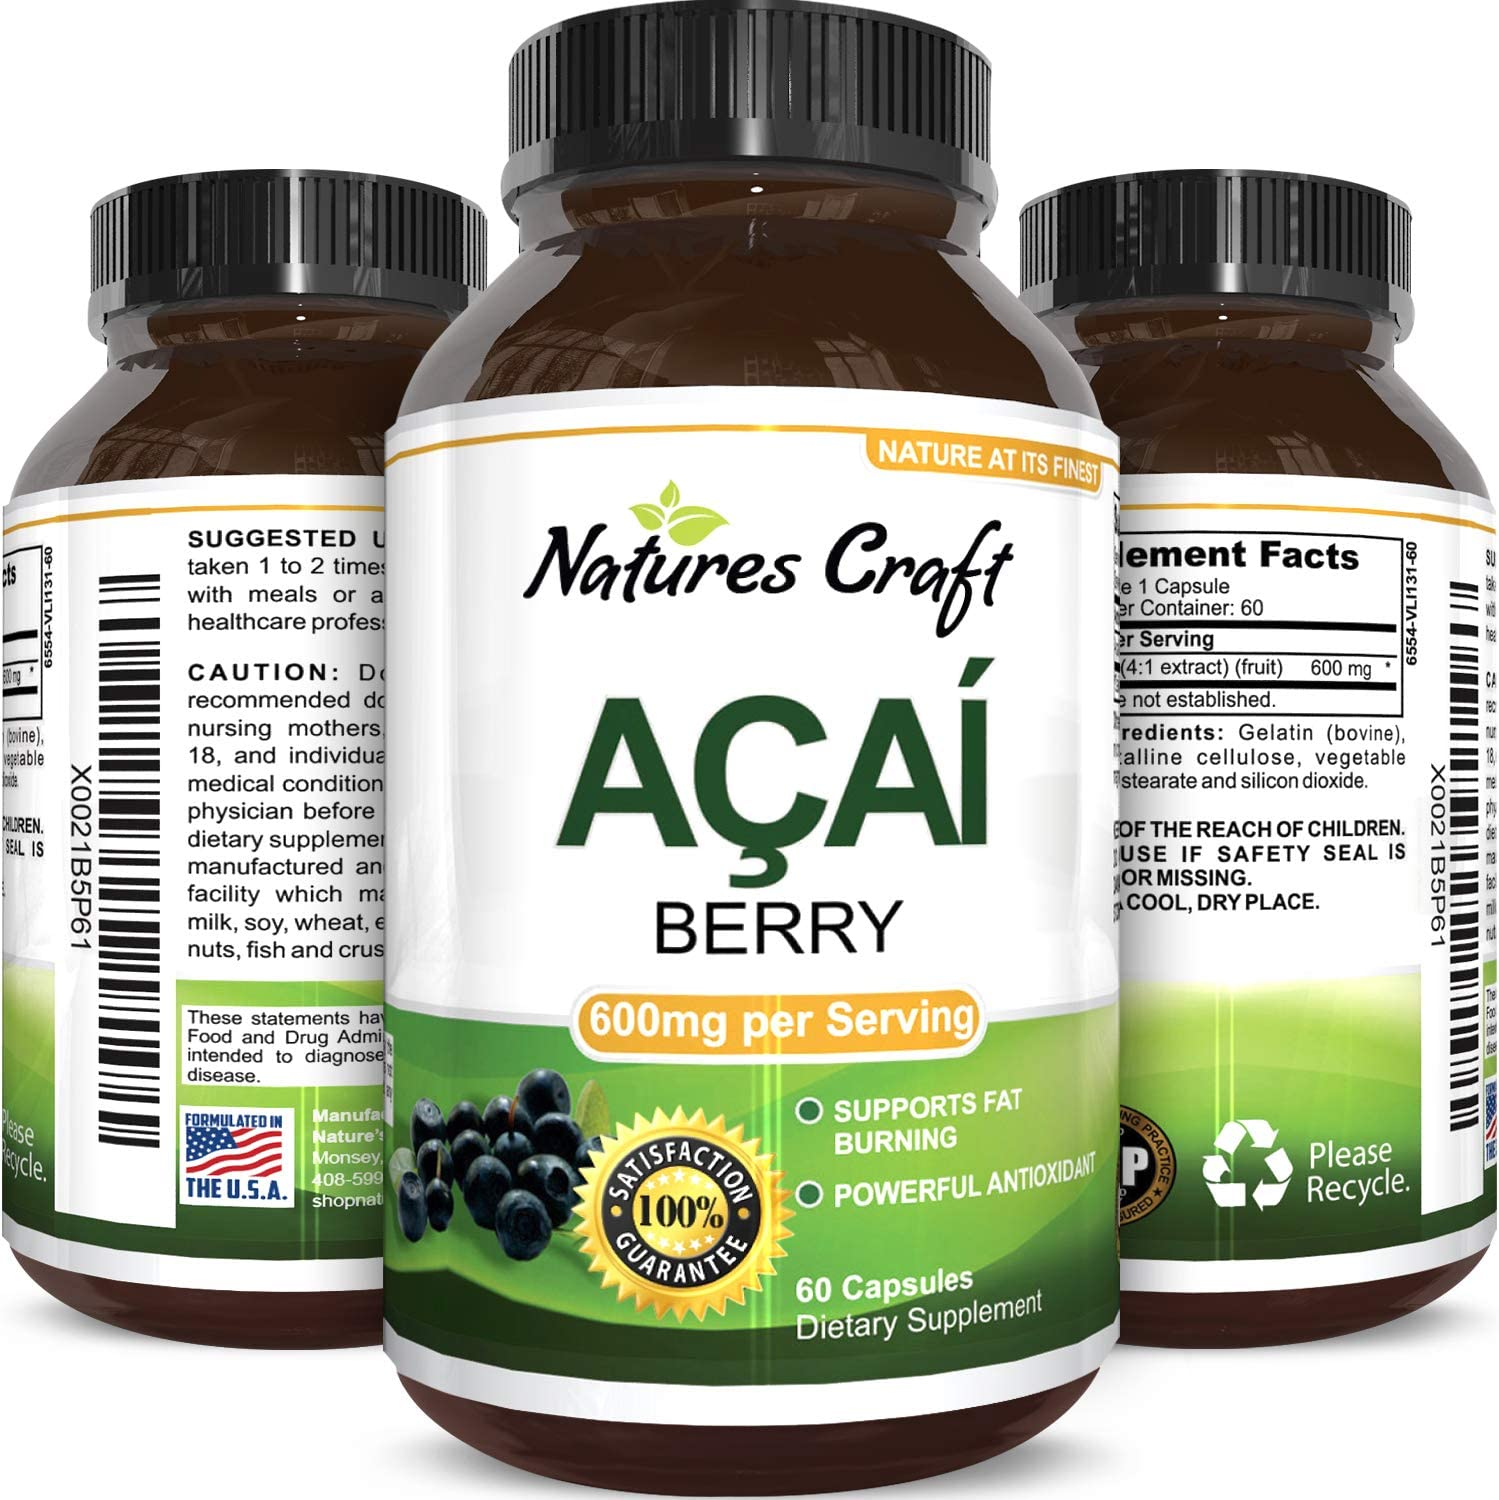 Amazon Com Natures Craft Pure Acai Berry Detox Weight Loss Supplement Natural Antioxidant Superfood Increase Energy Support Heart Health Burn Belly Fat Immune System Booster Skin Care Anti Aging 60 Capsules Health Personal